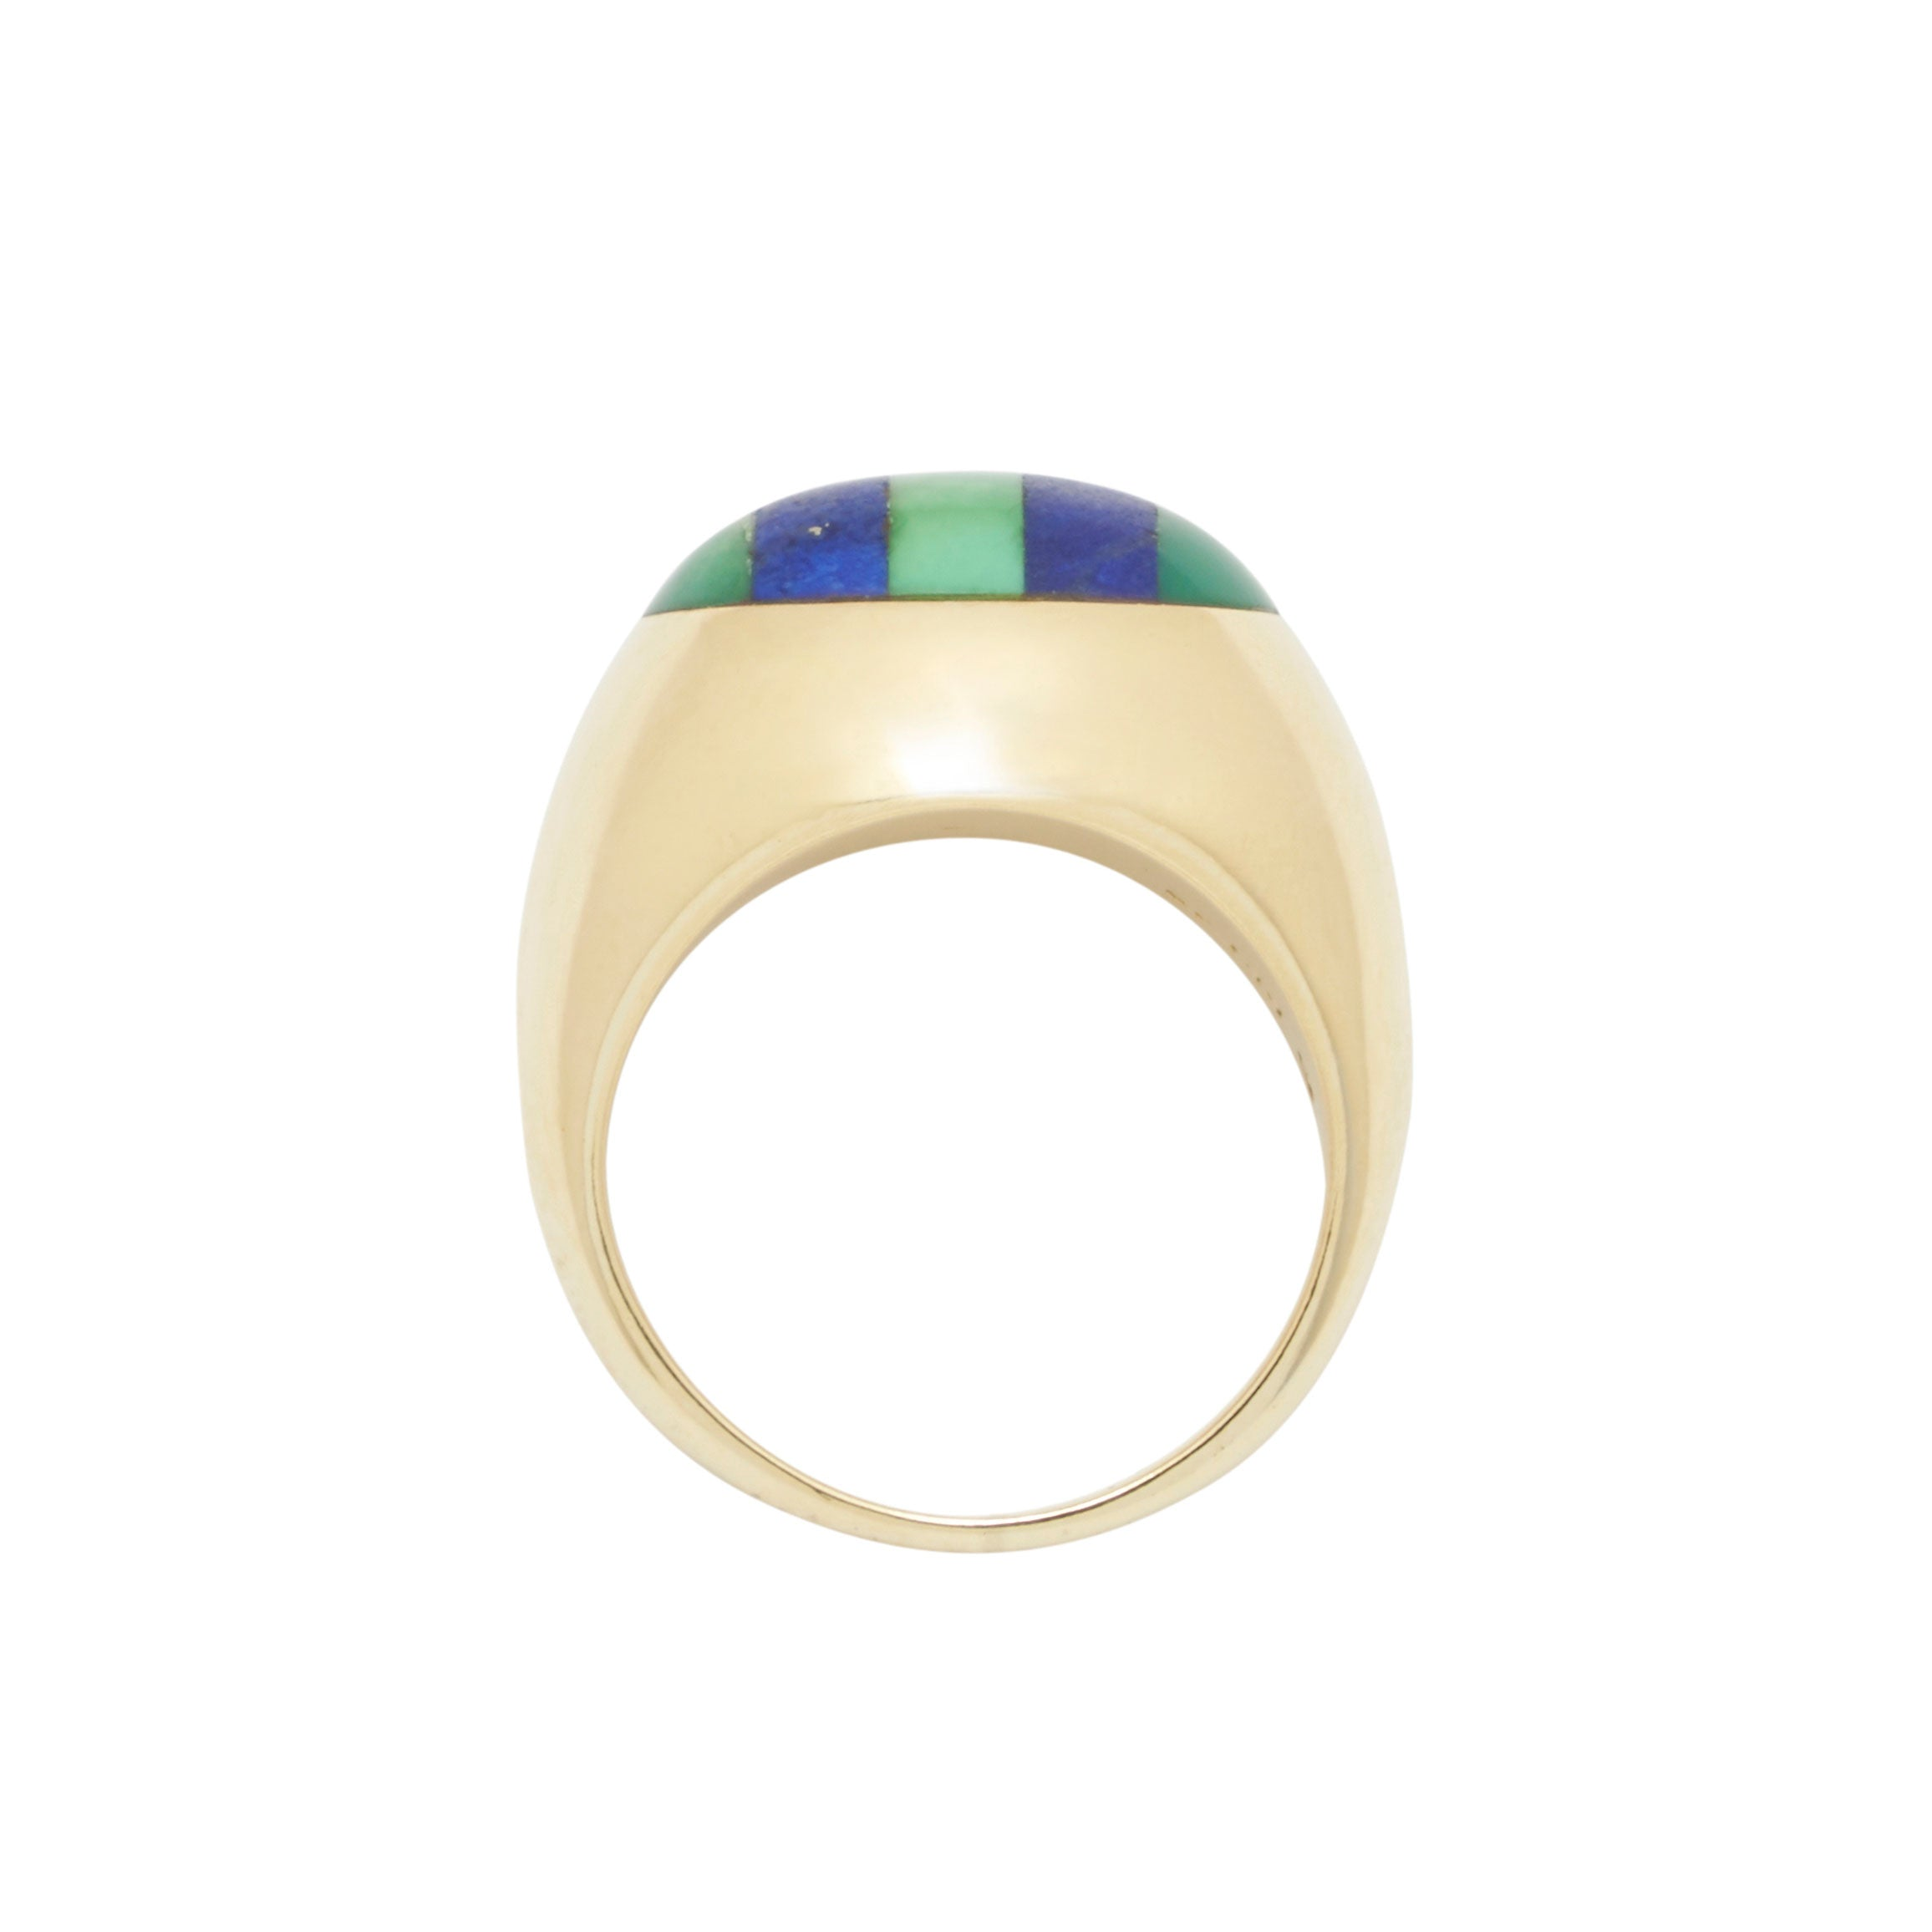 Tiffany & Co Vintage Lapis Lazuli And Jade 18k Yellow Gold Ring